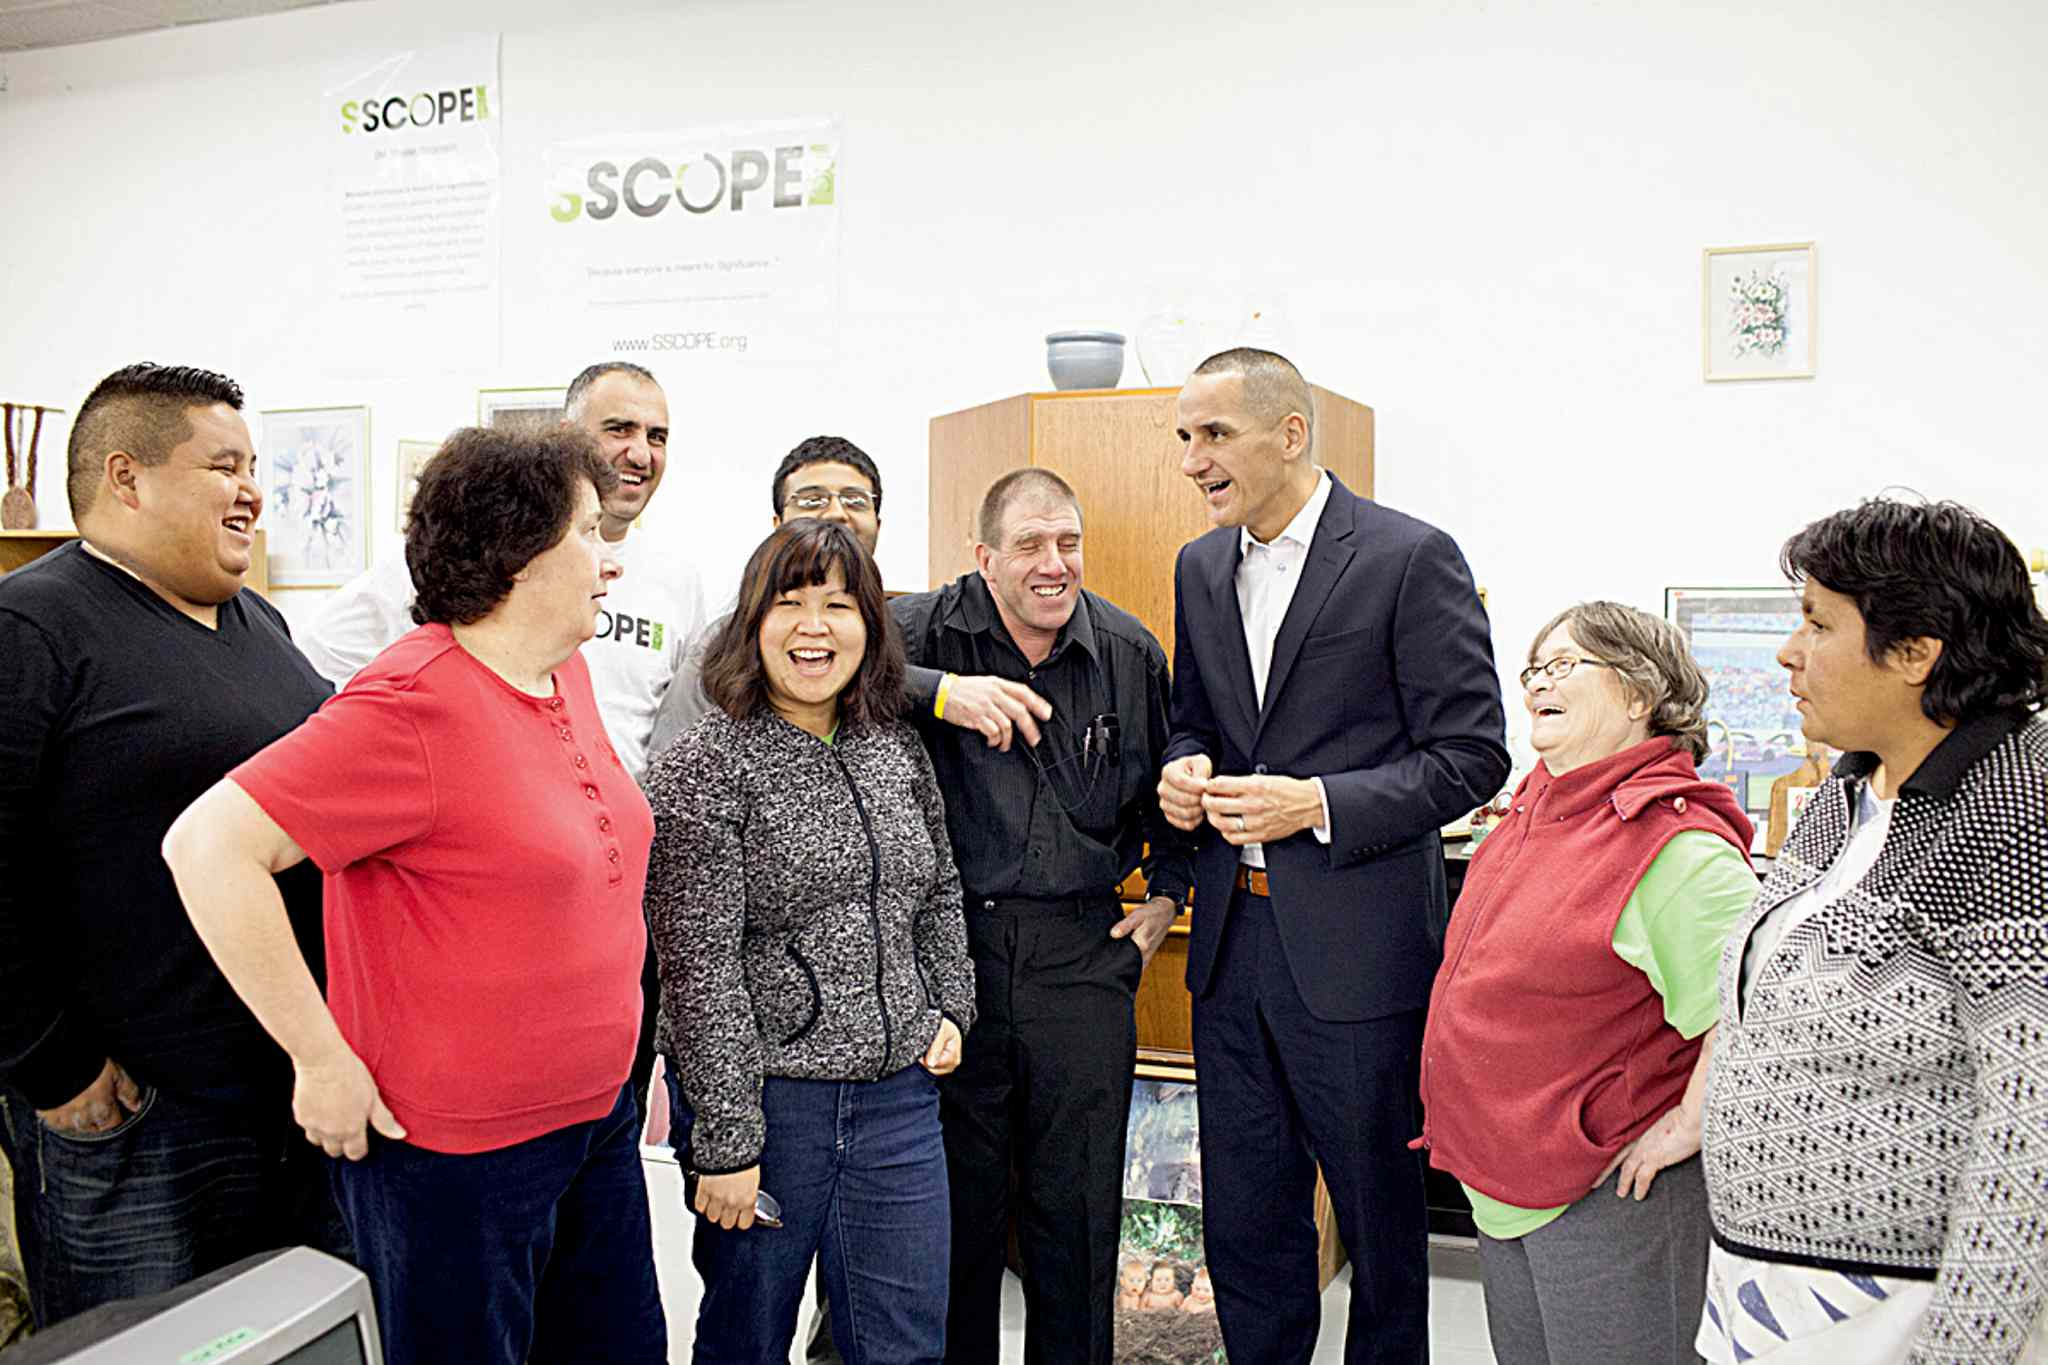 In celebration of Disability Employment Awareness Month, Kevin Chief, MLA for Point Douglas, visits with staff and members of SSCOPE. Pictured with Chief, from left: executive director Dan Ingalls, Tanya Arcioni, Nezar Abdulahad, Van Nong, Jugminder Hans, Sean Keenahan, Judy Ransome and Nancy Vermette.